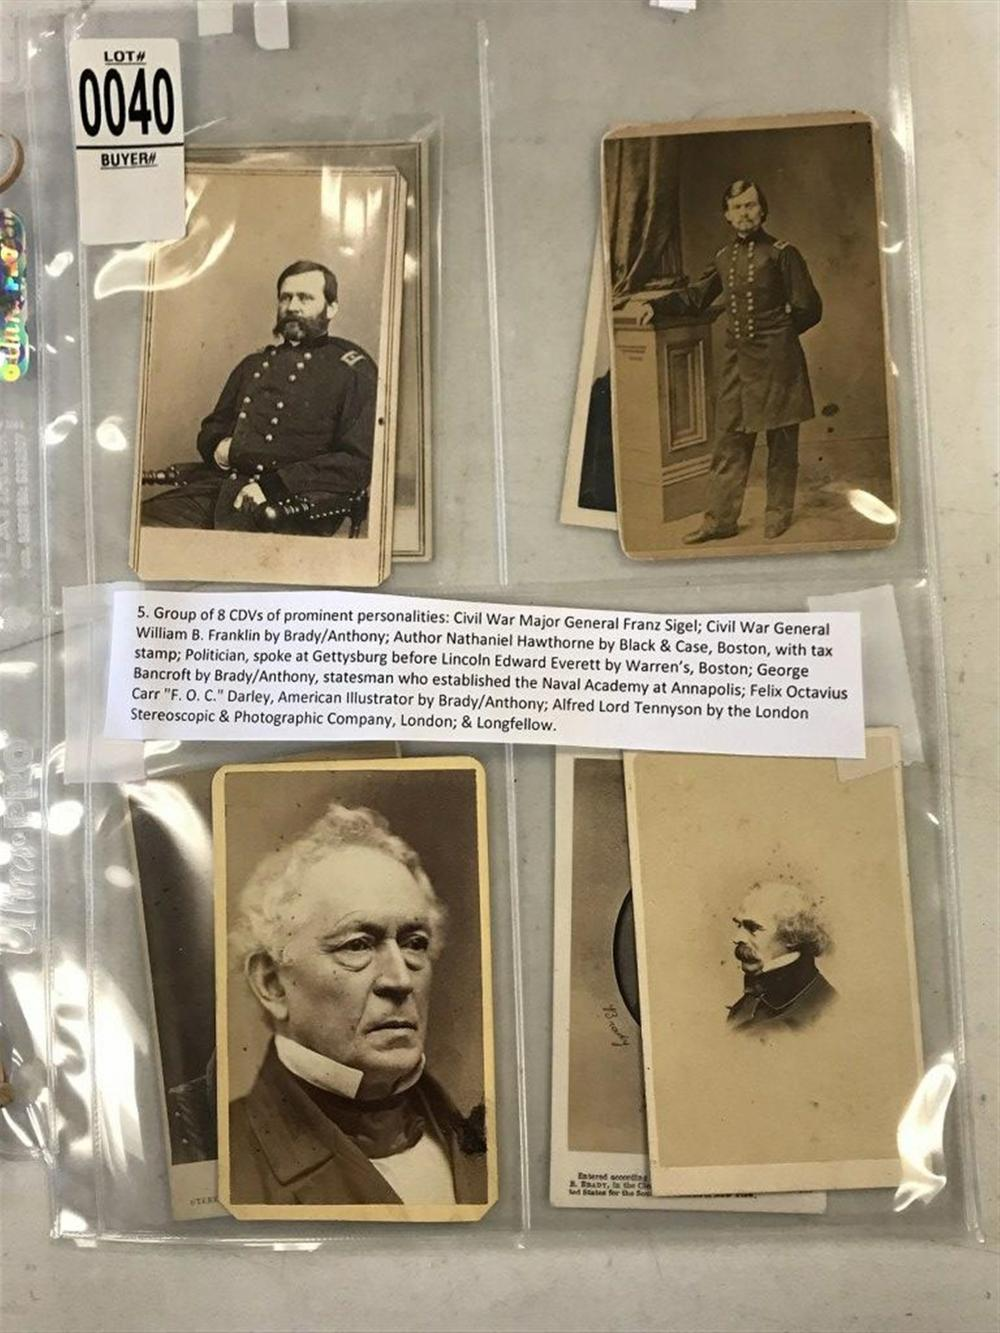 LOT OF 8 CDV'S OF PROMINENT PERSONALITIES; CIVIL WAR GENERAL FRANZ SIGEL; CIVIL WAR GENERAL WILLIAM B. FRANKLIN BY BRADY/ANTHONY; AUTHOR NATHANIEL HAWTHORNE BY BLACK & CASE, BOSTON, WITH TAX STAMP; POLITICIAN, SPOKE AT GETTYSBURG BEFORE LINCOLN